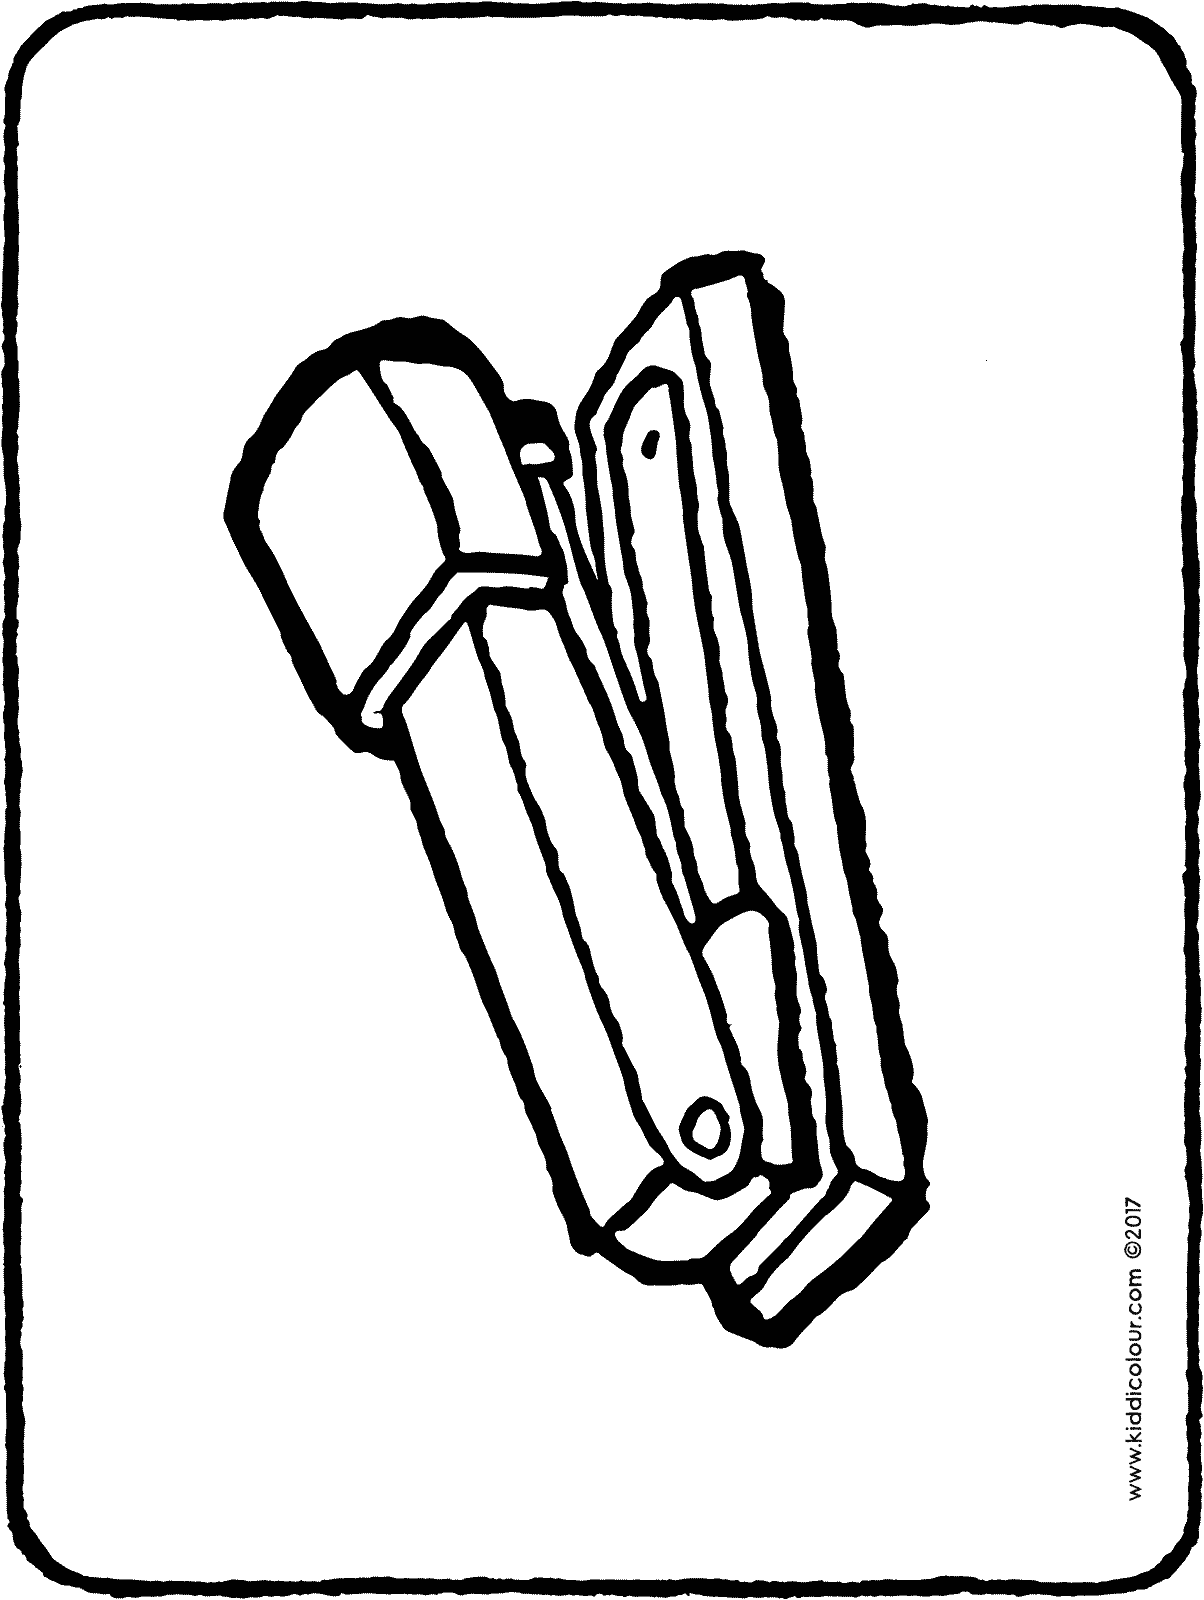 stapler colouring page drawing picture 01H